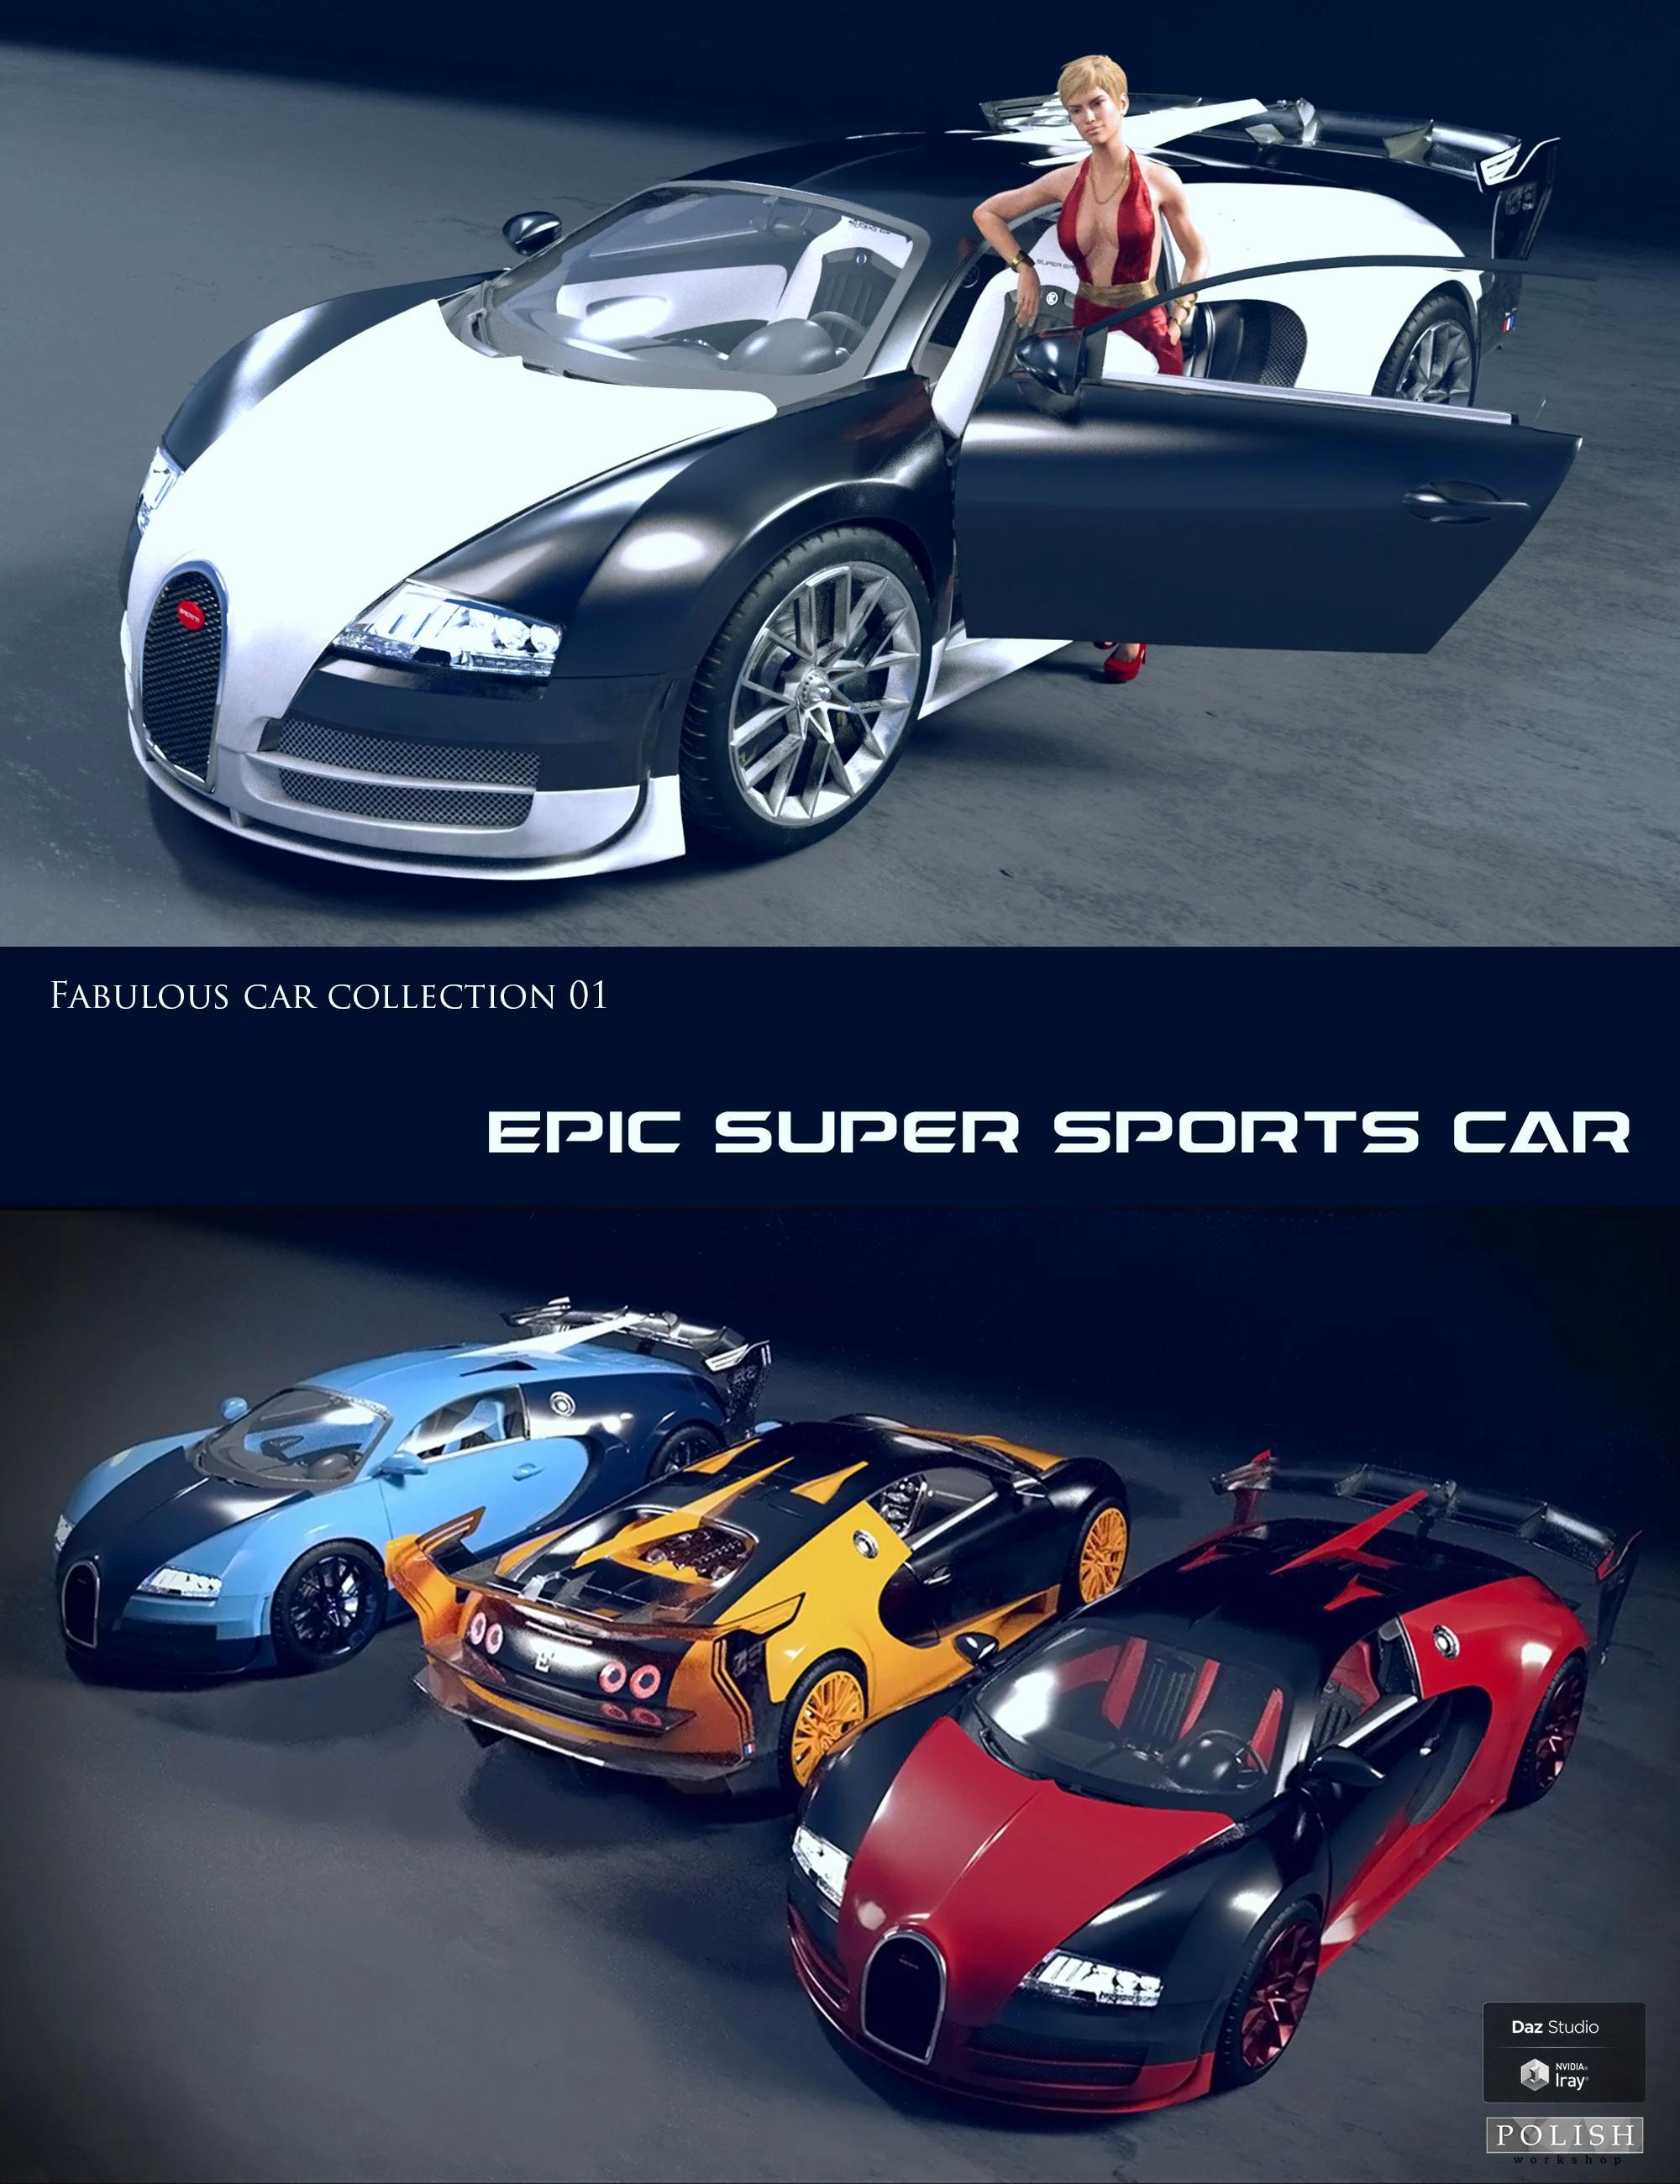 Epic Super Sports Car